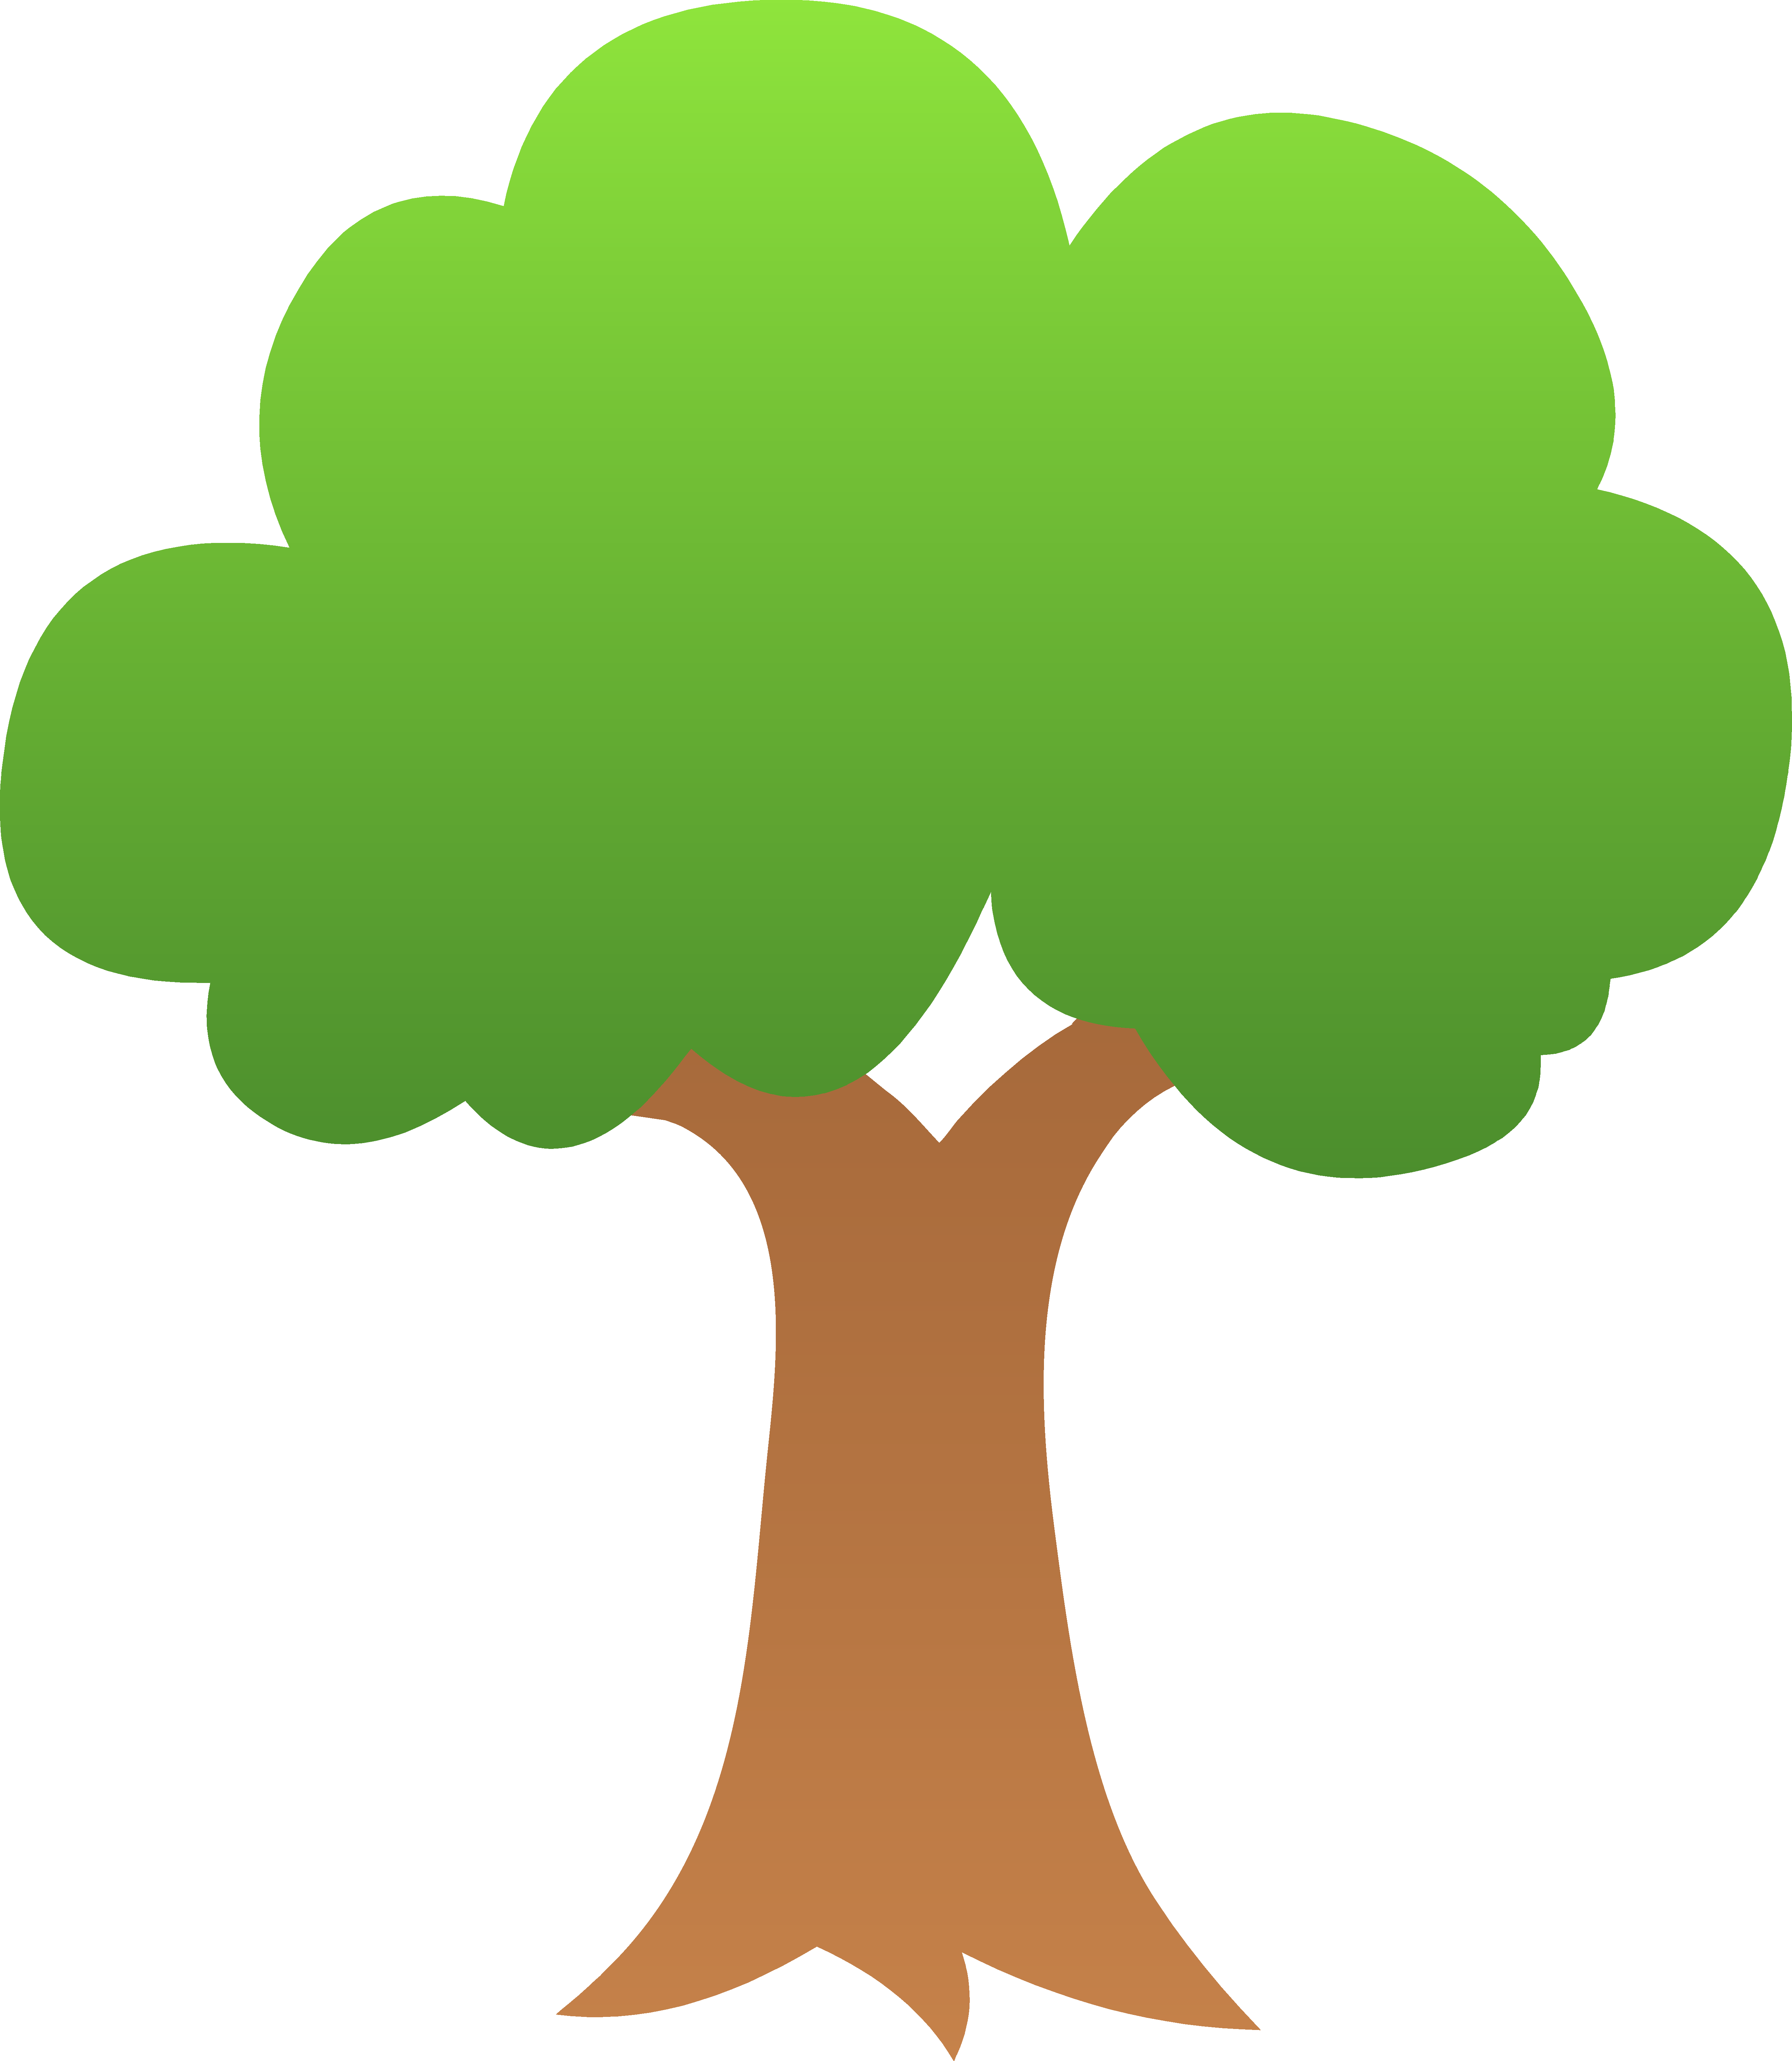 Free Tree Images Free, Download Free Clip Art, Free Clip Art.